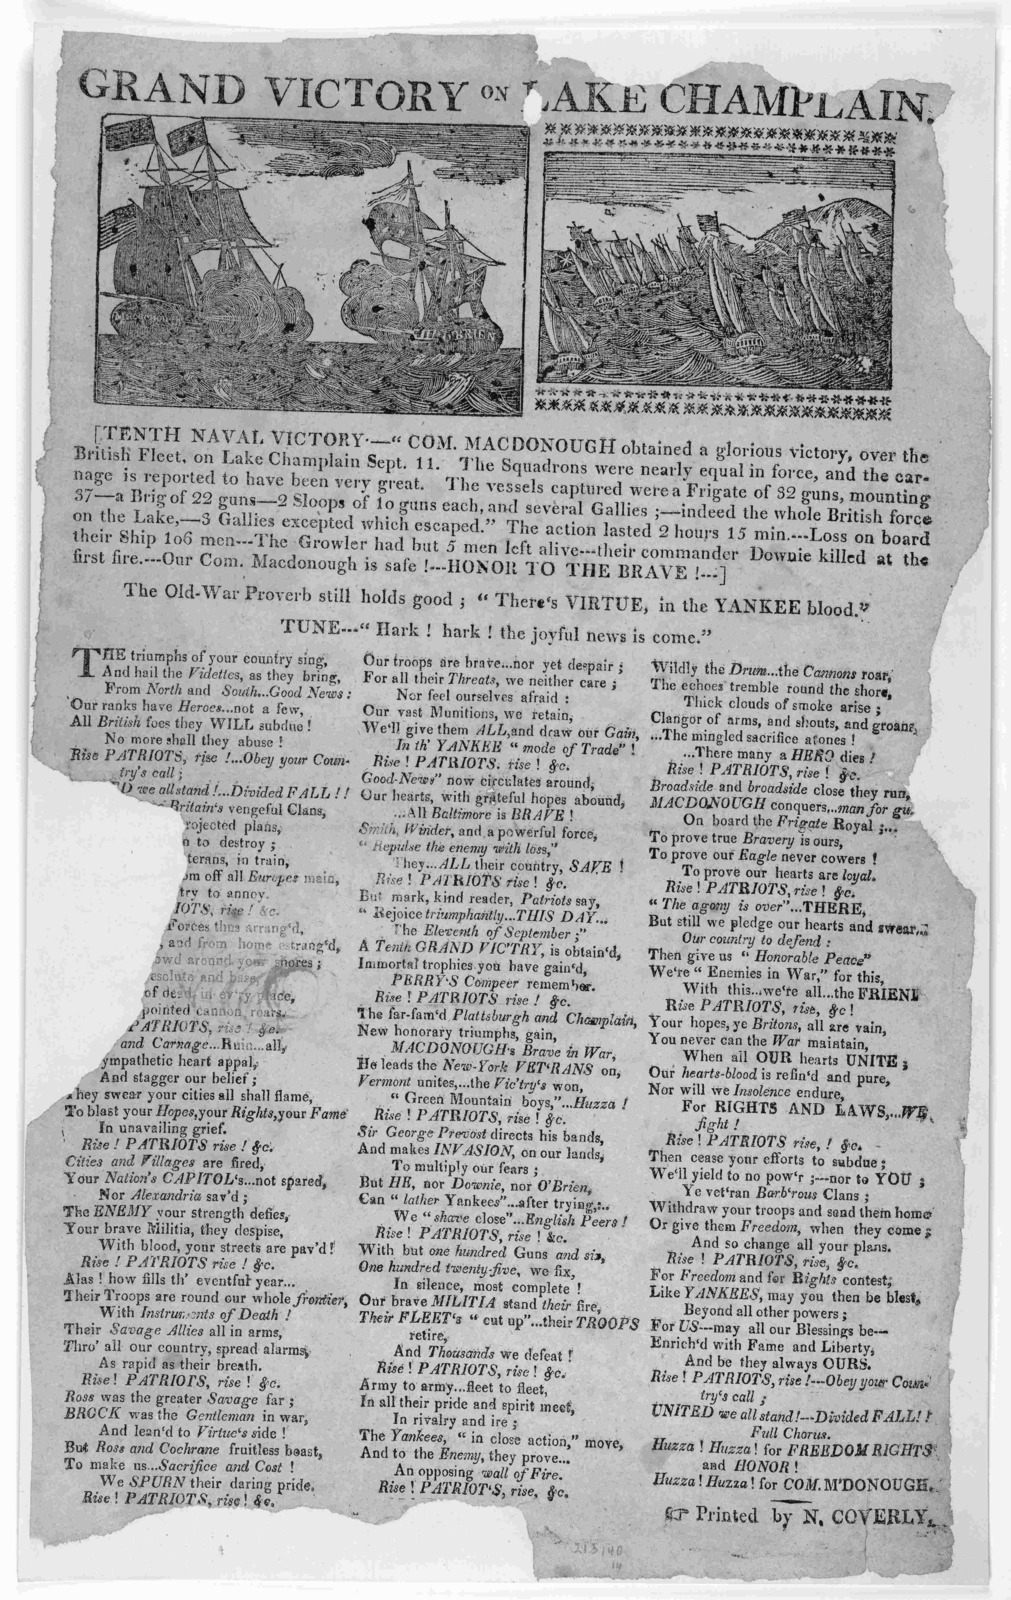 """Grand victory on Lake Champlain [Cuts] Tenth naval victory.- """"Com. Macdonough obtained a glorious victory, over the British Fleet on Lake Champlain Sept. 11 ... The old-war proverb still holds good; """"There's virtue in the Yankee blood."""" Tune ..."""